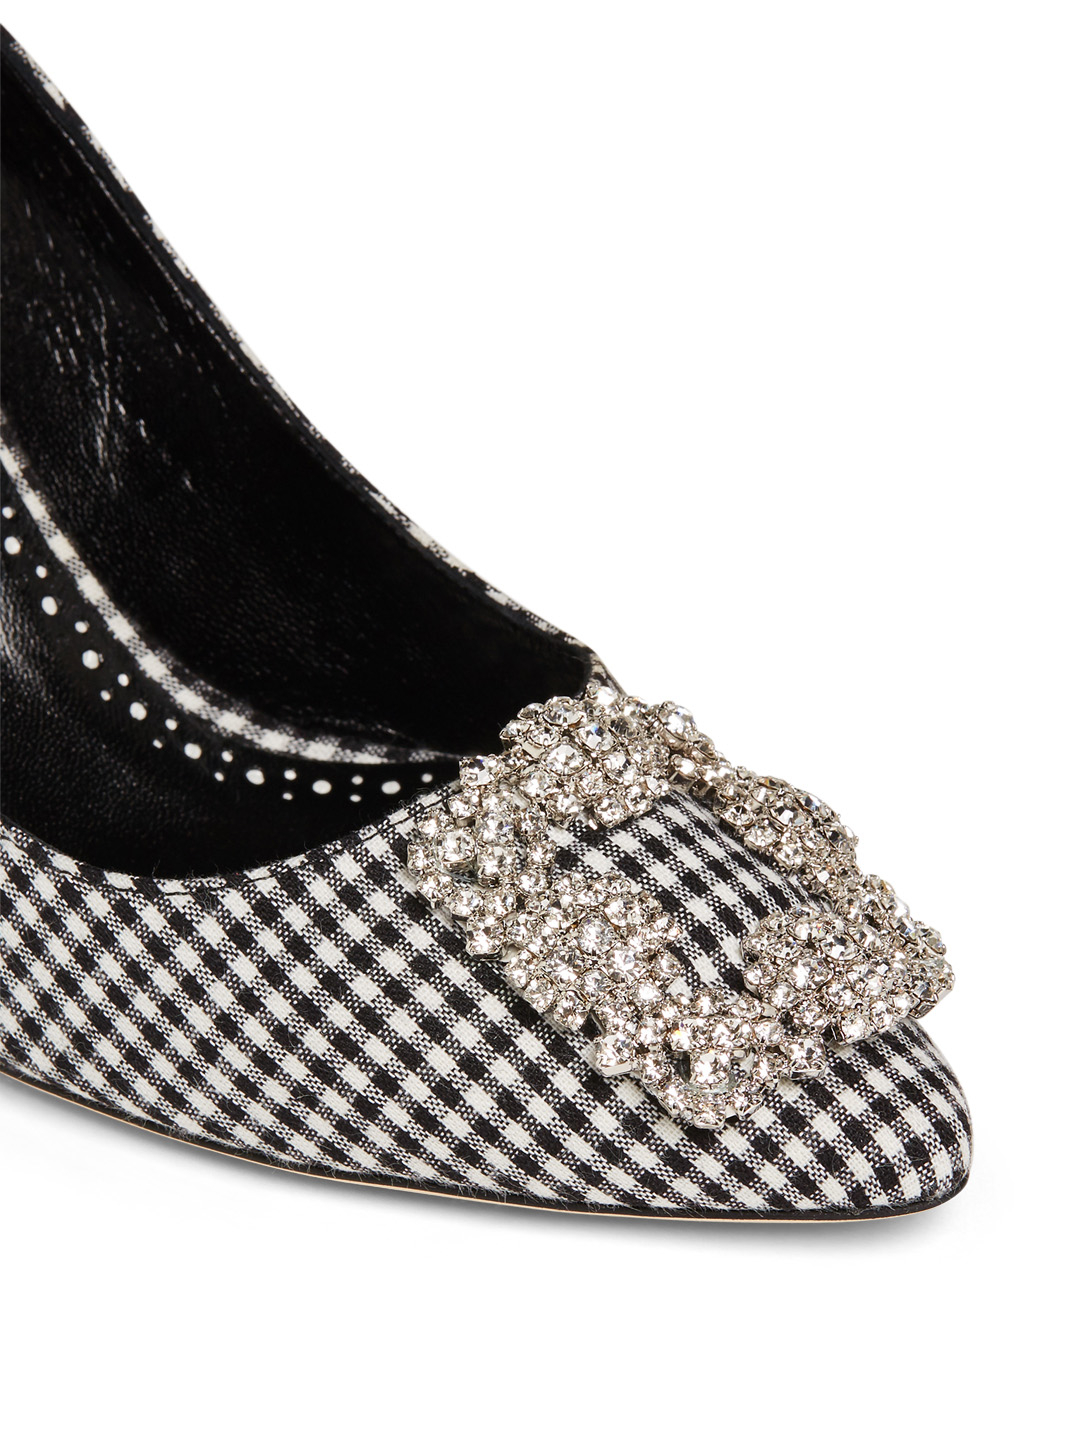 MANOLO BLAHNIK Hangisi 70 Gingham Pumps With Crystal Embellishment Women's Multi